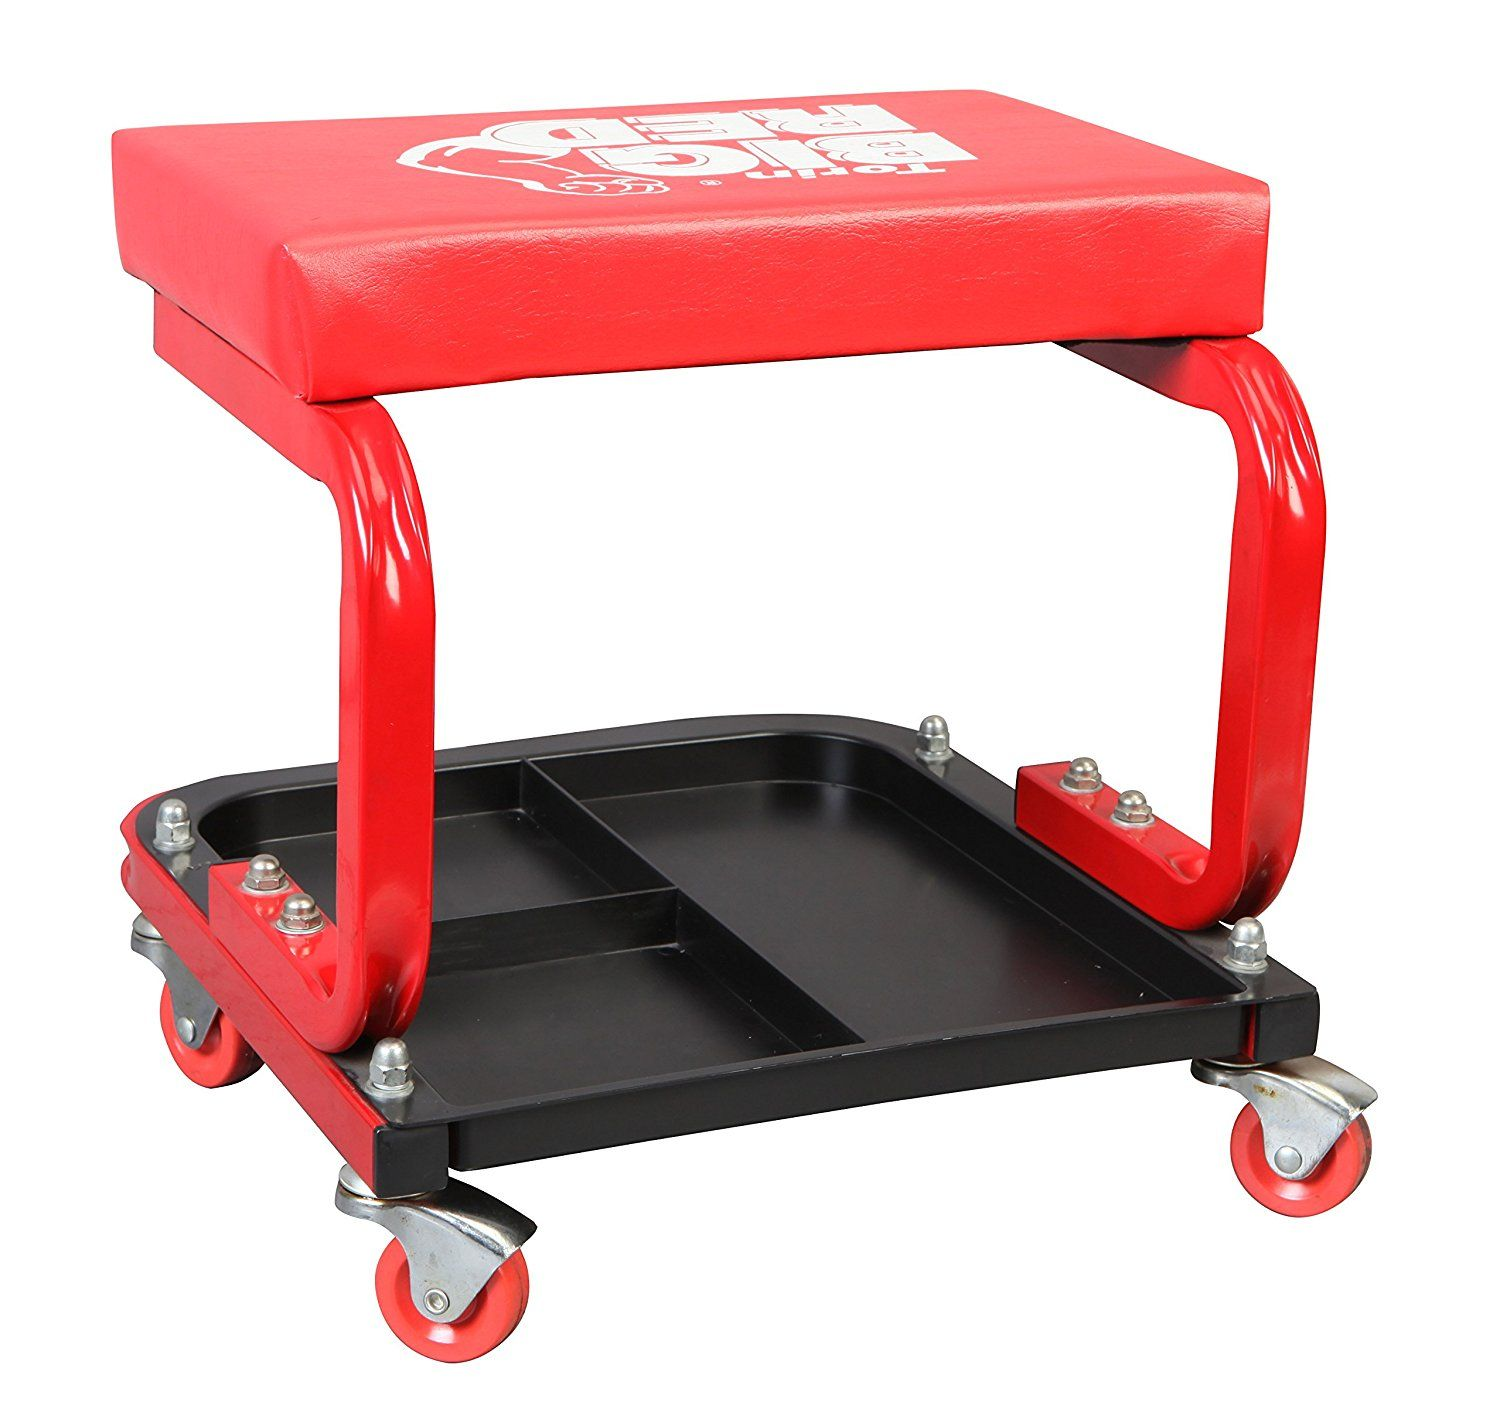 Torin TR6300 Rolling Creeper Garage/Shop Seat Padded Mechanic Stool with Tool Tray  sc 1 st  Pinterest & Torin TR6300 Rolling Creeper Garage/Shop Seat: Padded Mechanic ... islam-shia.org